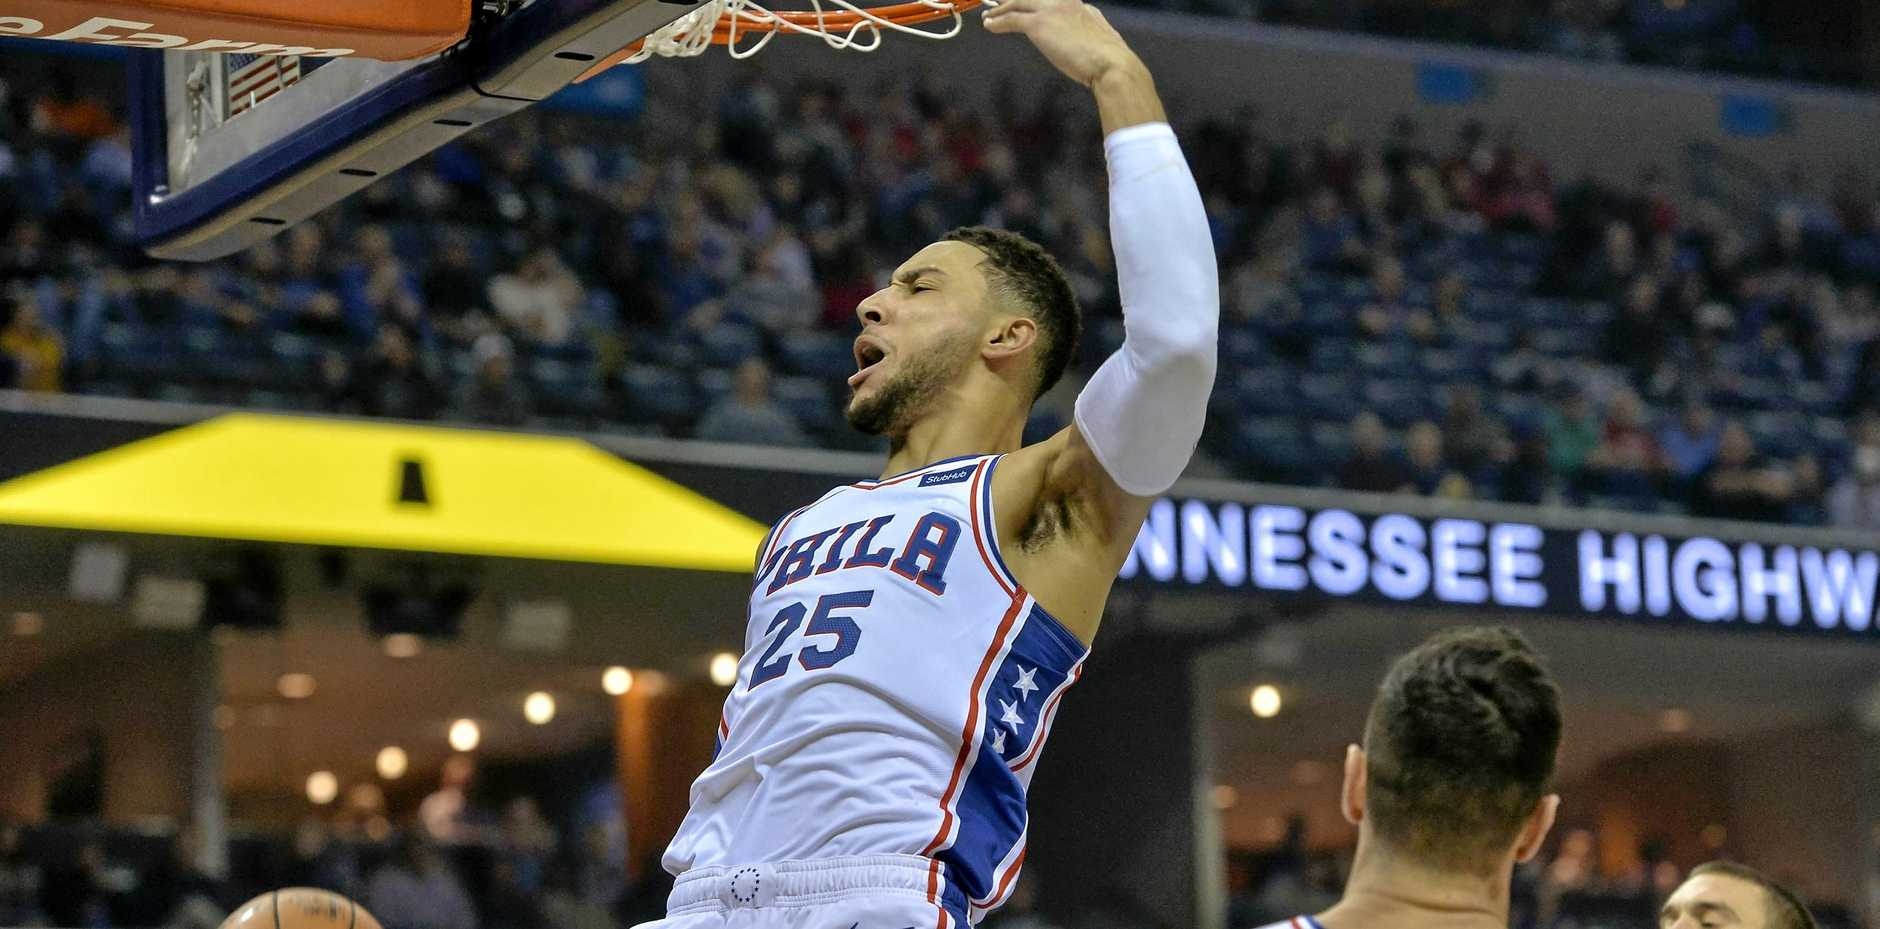 Philadelphia 76ers guard Ben Simmons scores in the first half against the Memphis Grizzlies. Picture: Brandon Dill/AP